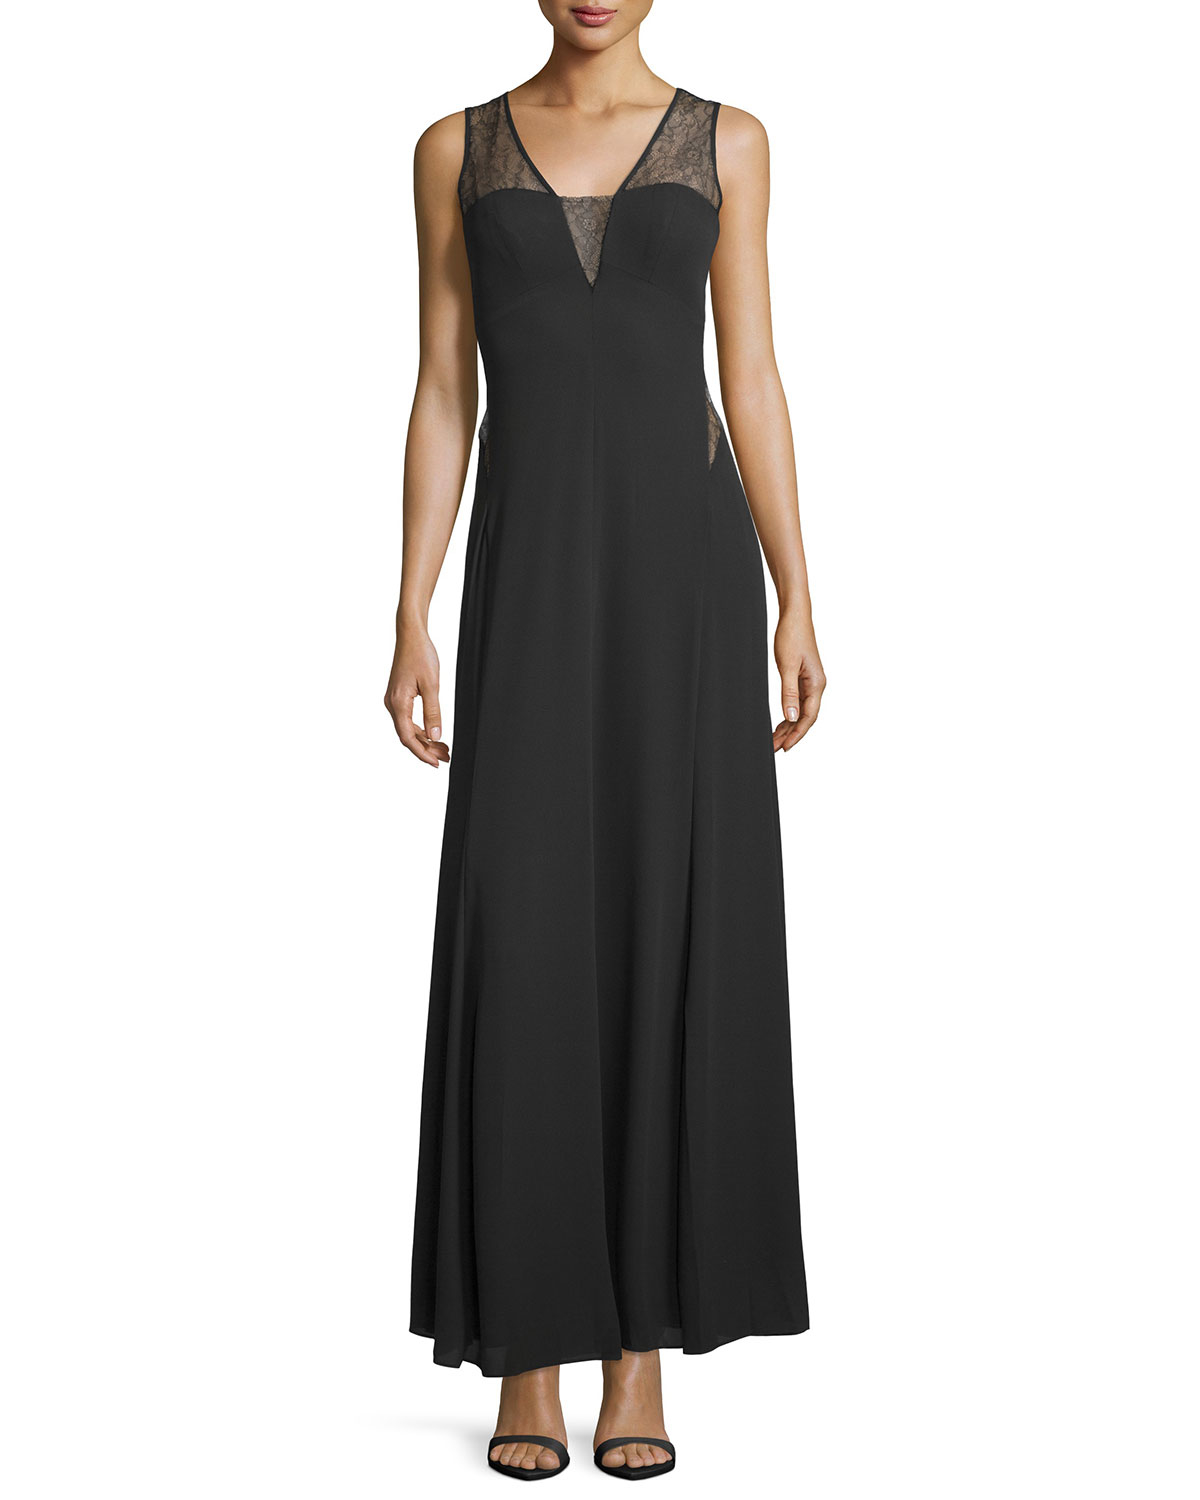 ee58afcd32c Bcbg Black Lace Maxi Dress – Little Black Dress